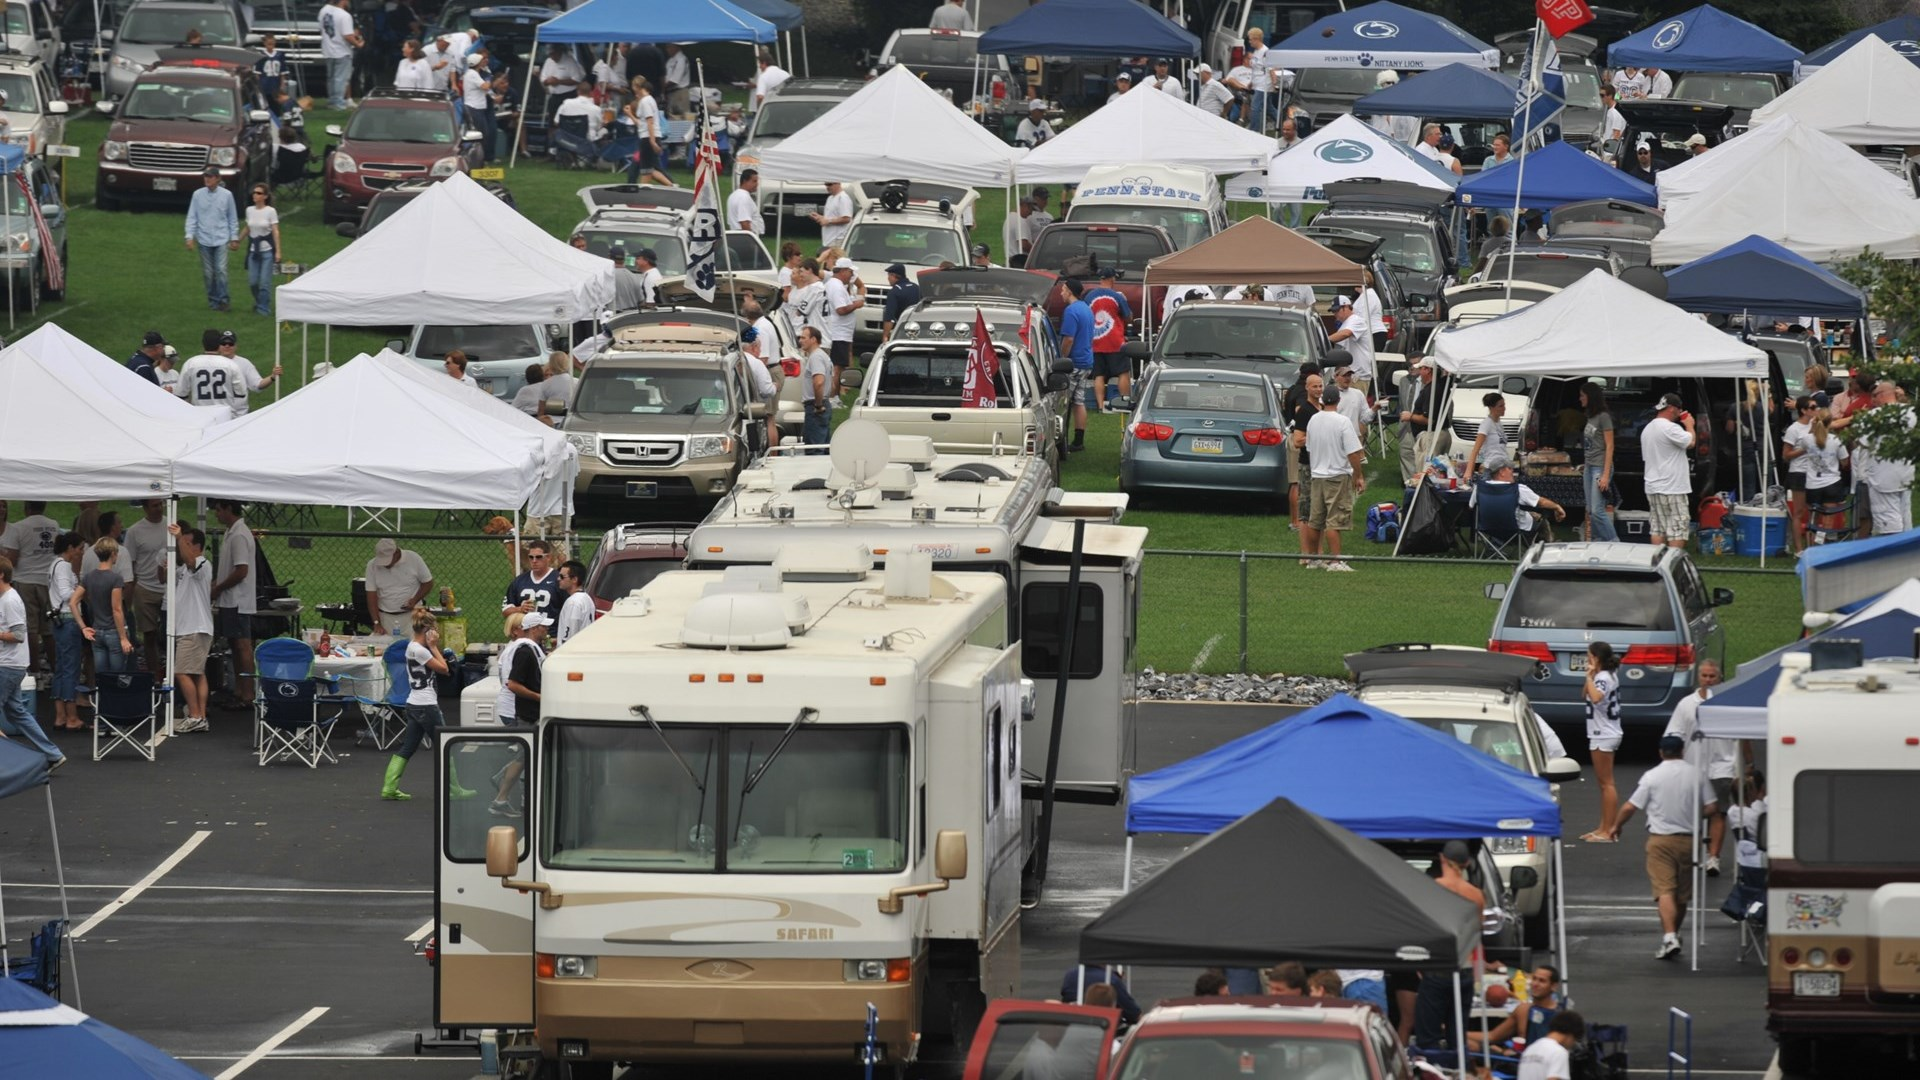 Grass Lot Parking Changes Finalized for Kent State Game